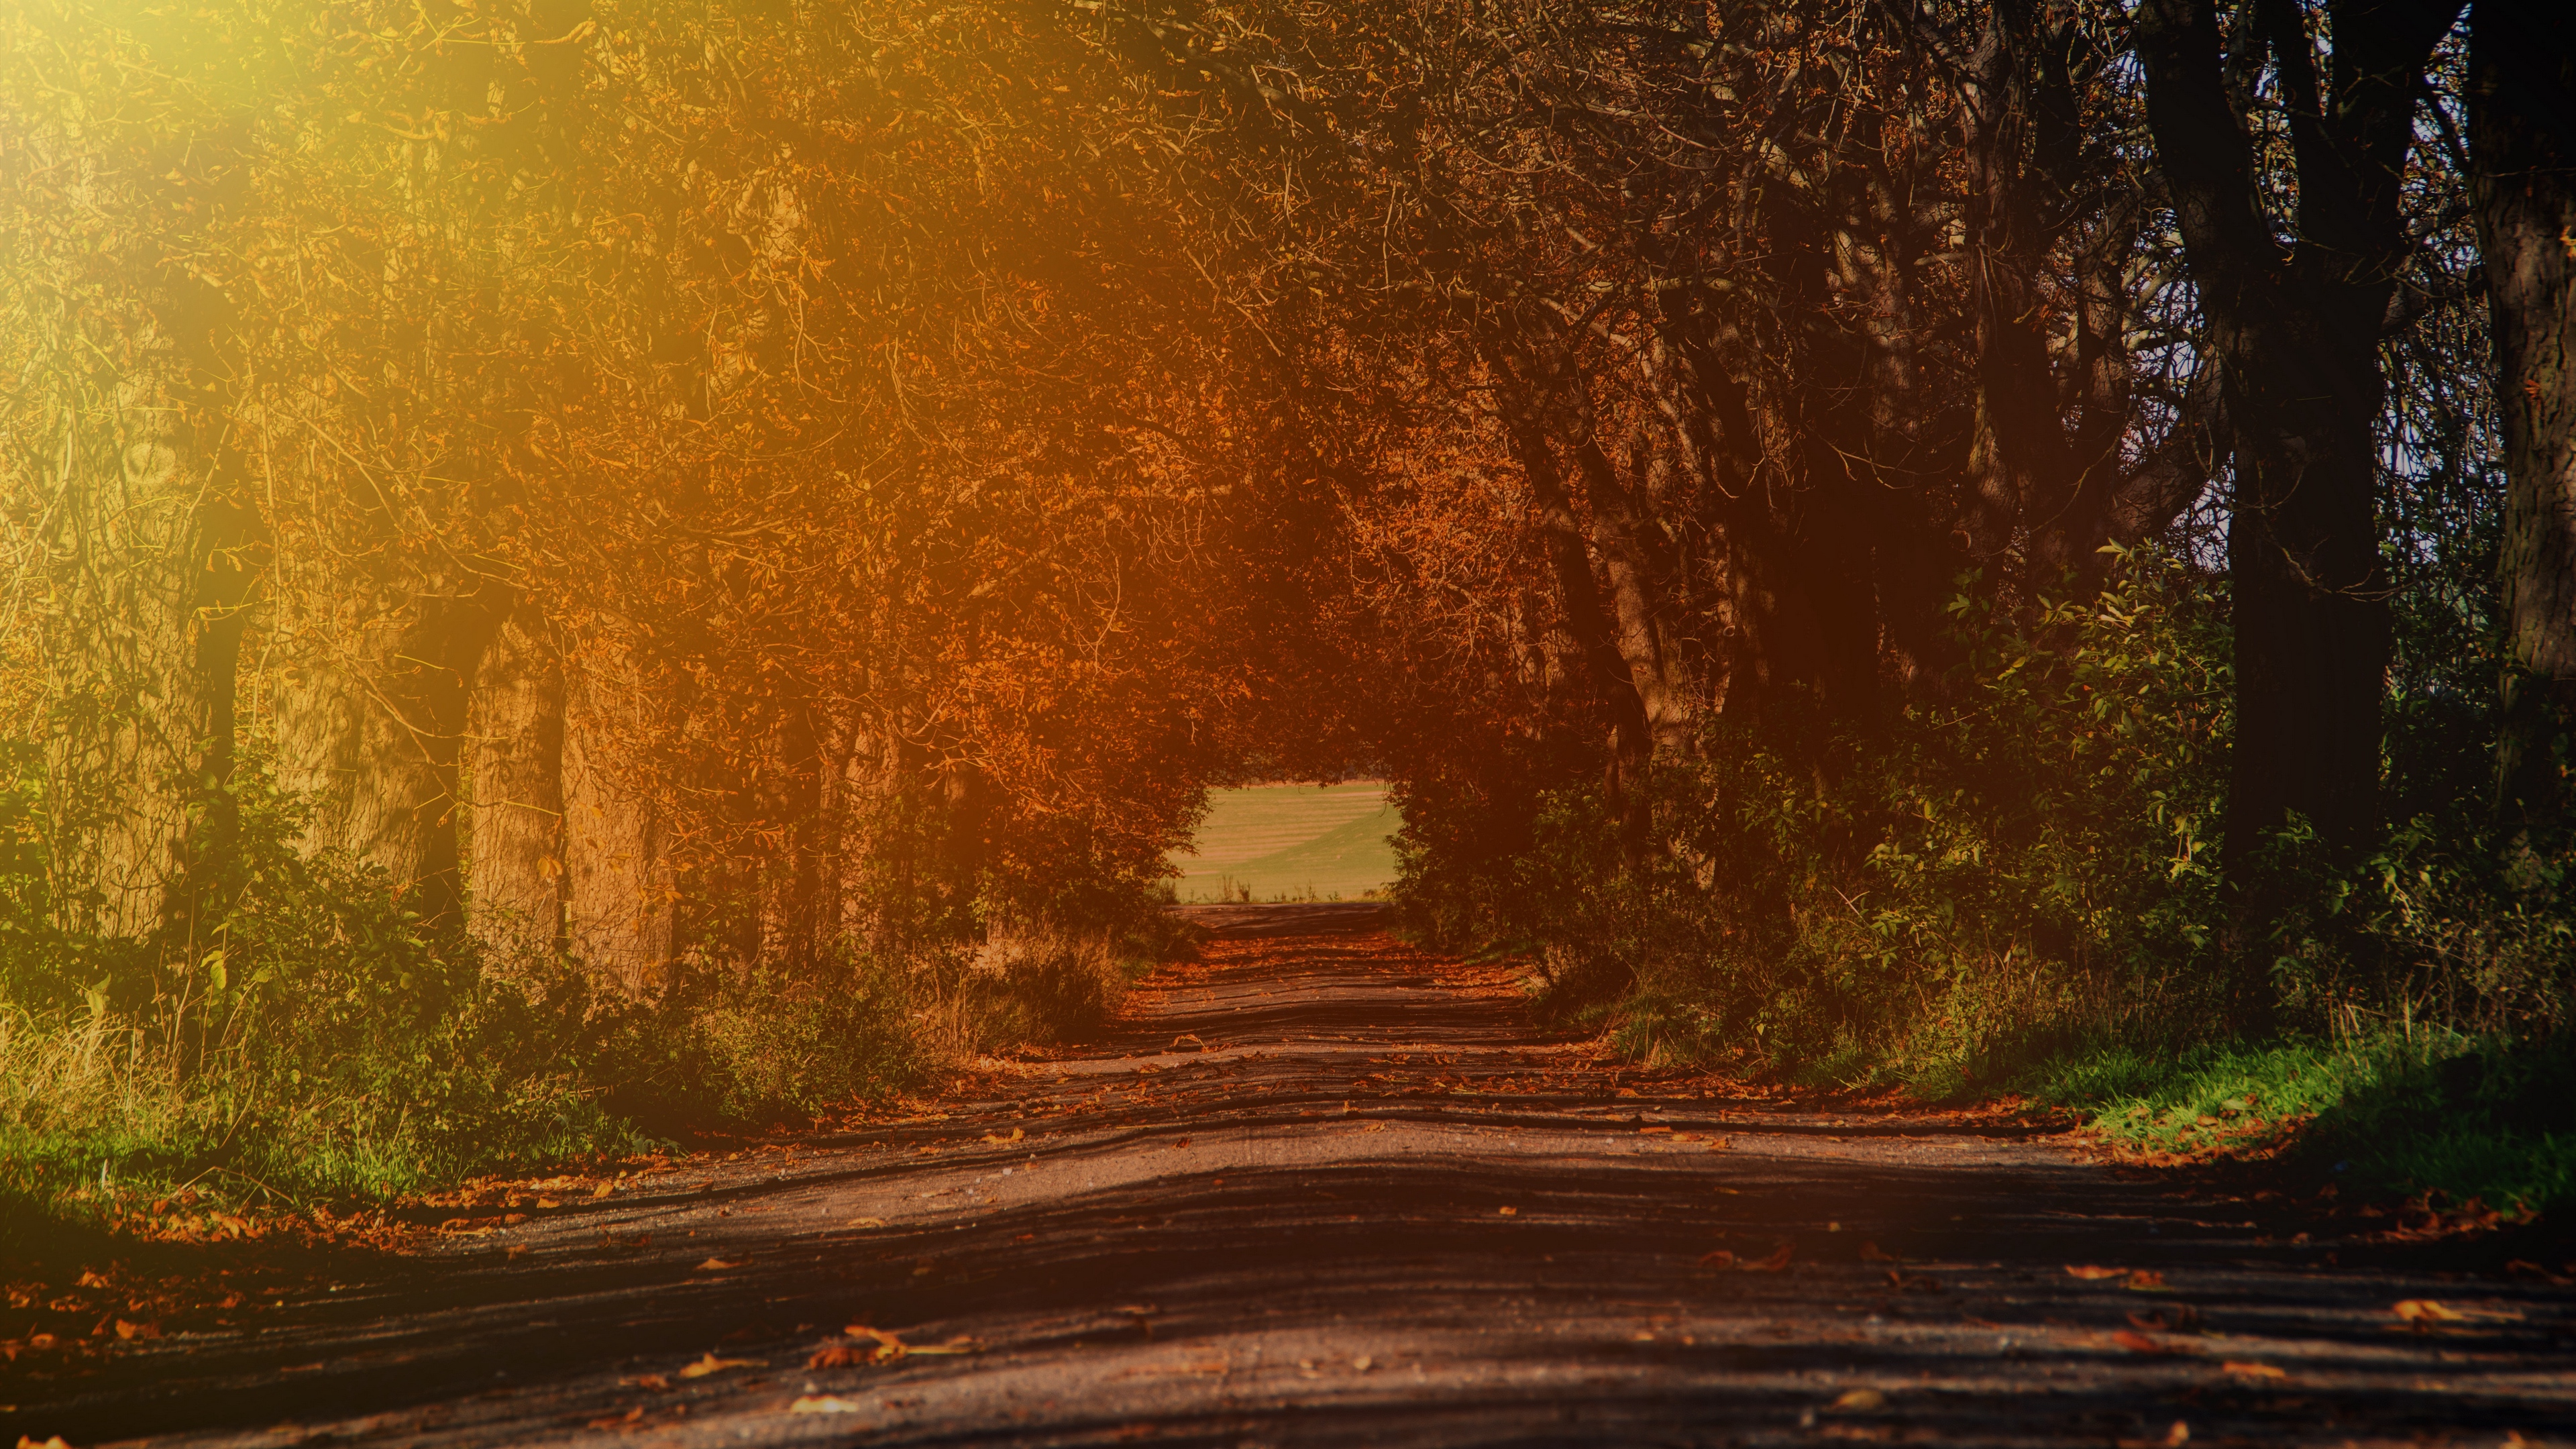 road branches autumn sunlight trees 4k 1541113715 - road, branches, autumn, sunlight, trees 4k - Road, branches, Autumn